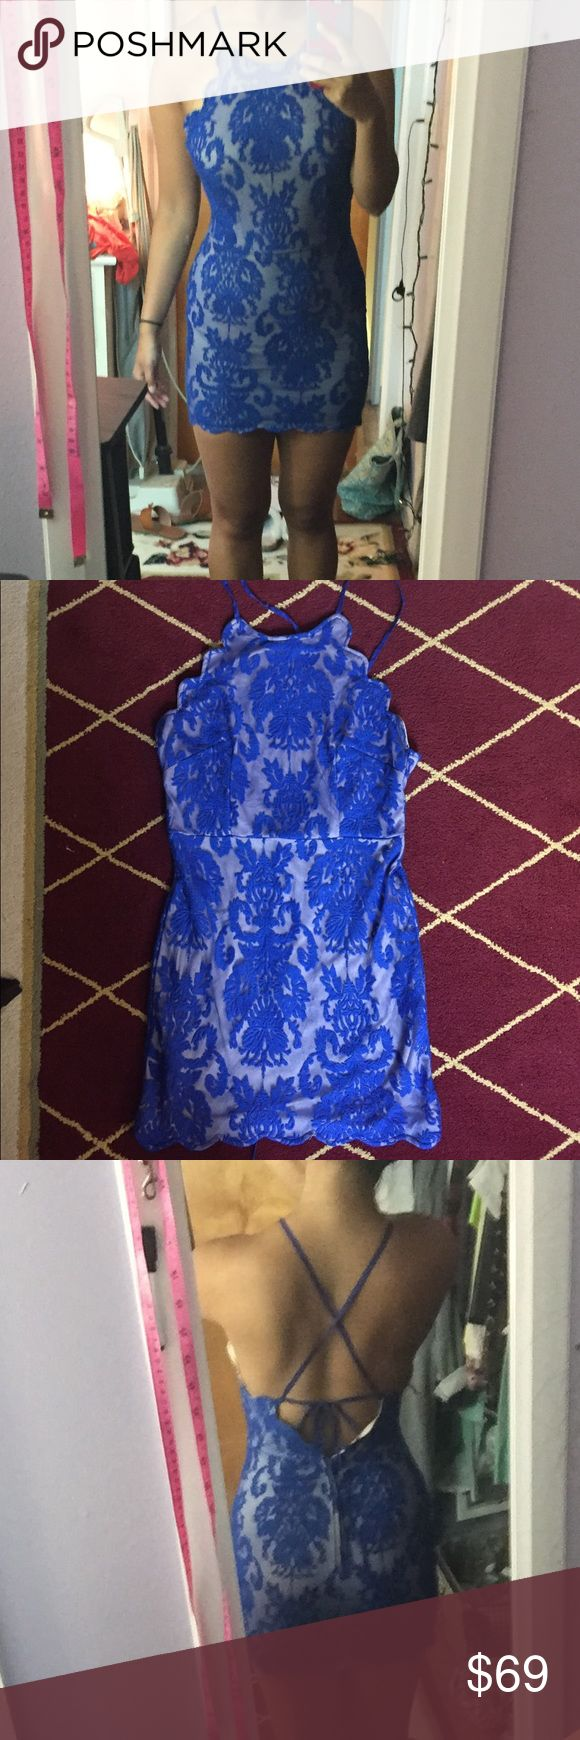 """Blue lace open back dress Brand new never worn. Fits like a USA small/medium. Brand is Hello Molly. Australian size 12 (a US size 8). I am 5'6 & 150 pounds 28"""" waist and it's too small on my legs/hips. I have large hips and thighs. I wear size USA 8-10 in pants and mediums in tops and stuff. This fits small or medium and girls who are 5'5 or shorter. YES I bundle🚫NO TRADES EVER🚫 no low balls. Don't ask to trade I will say no even if I love your closet. Negotiable. NOT URBAN OUTFITTERS…"""